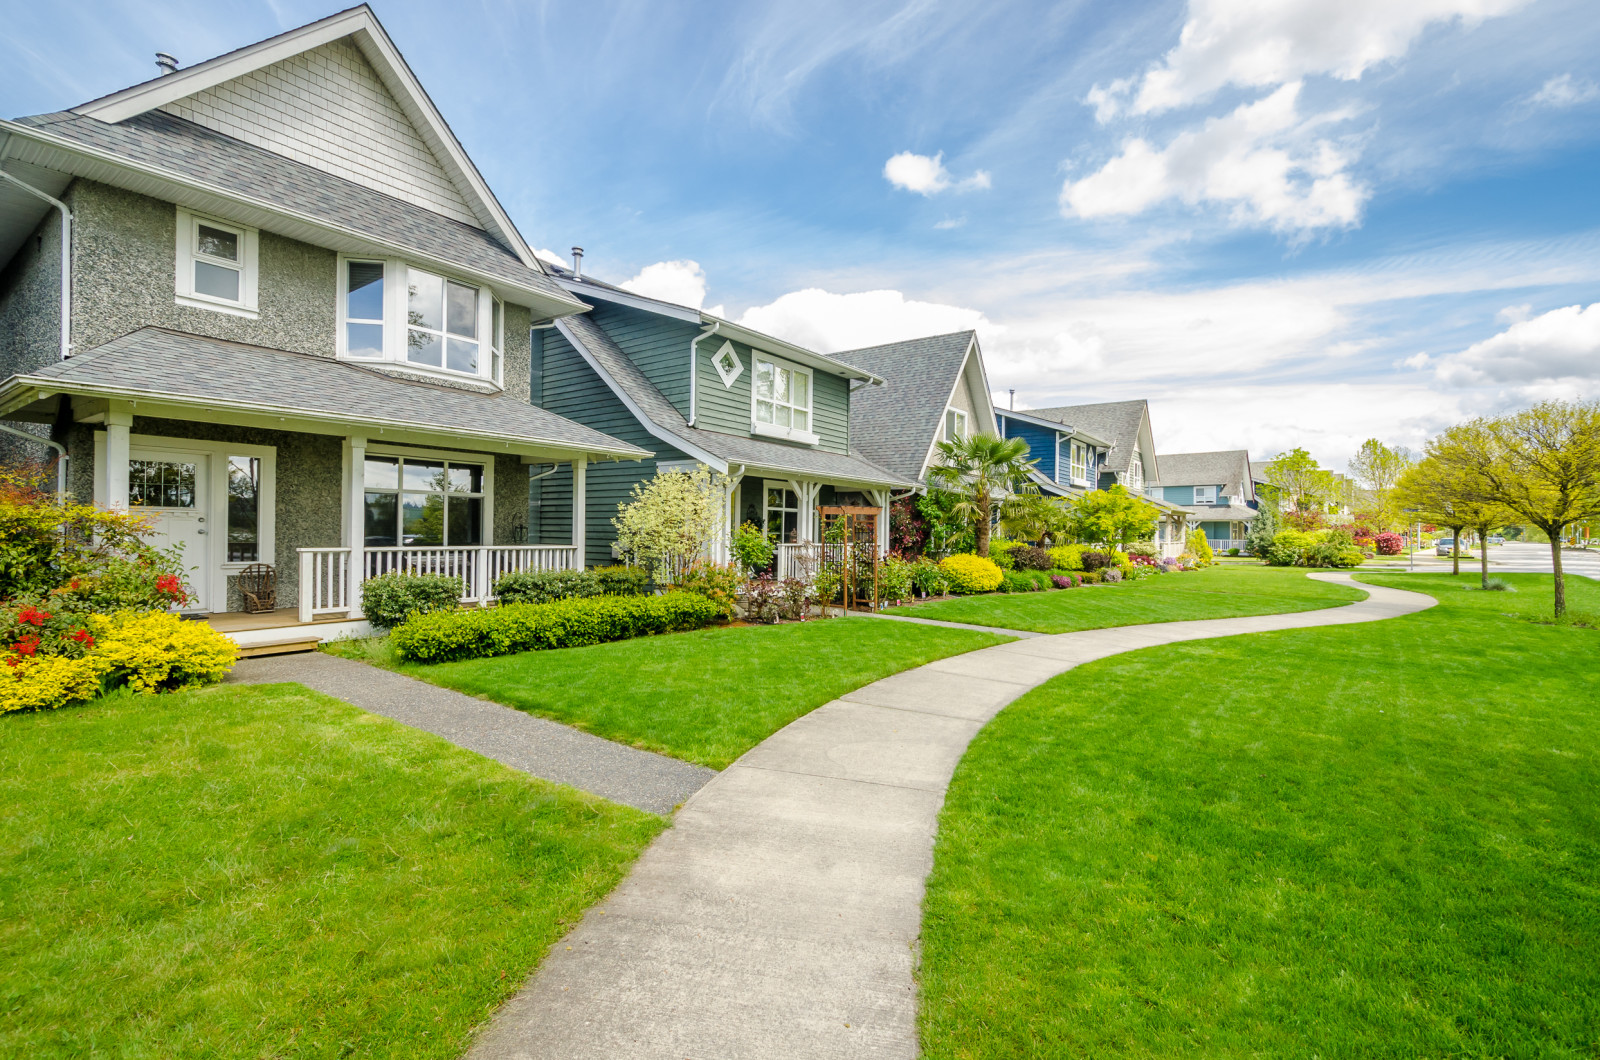 Rockin' the Suburbs: Home Values and Rents in Urban ... on zillow floor plans, bing property map, zillow aerial view, zillow commercial,